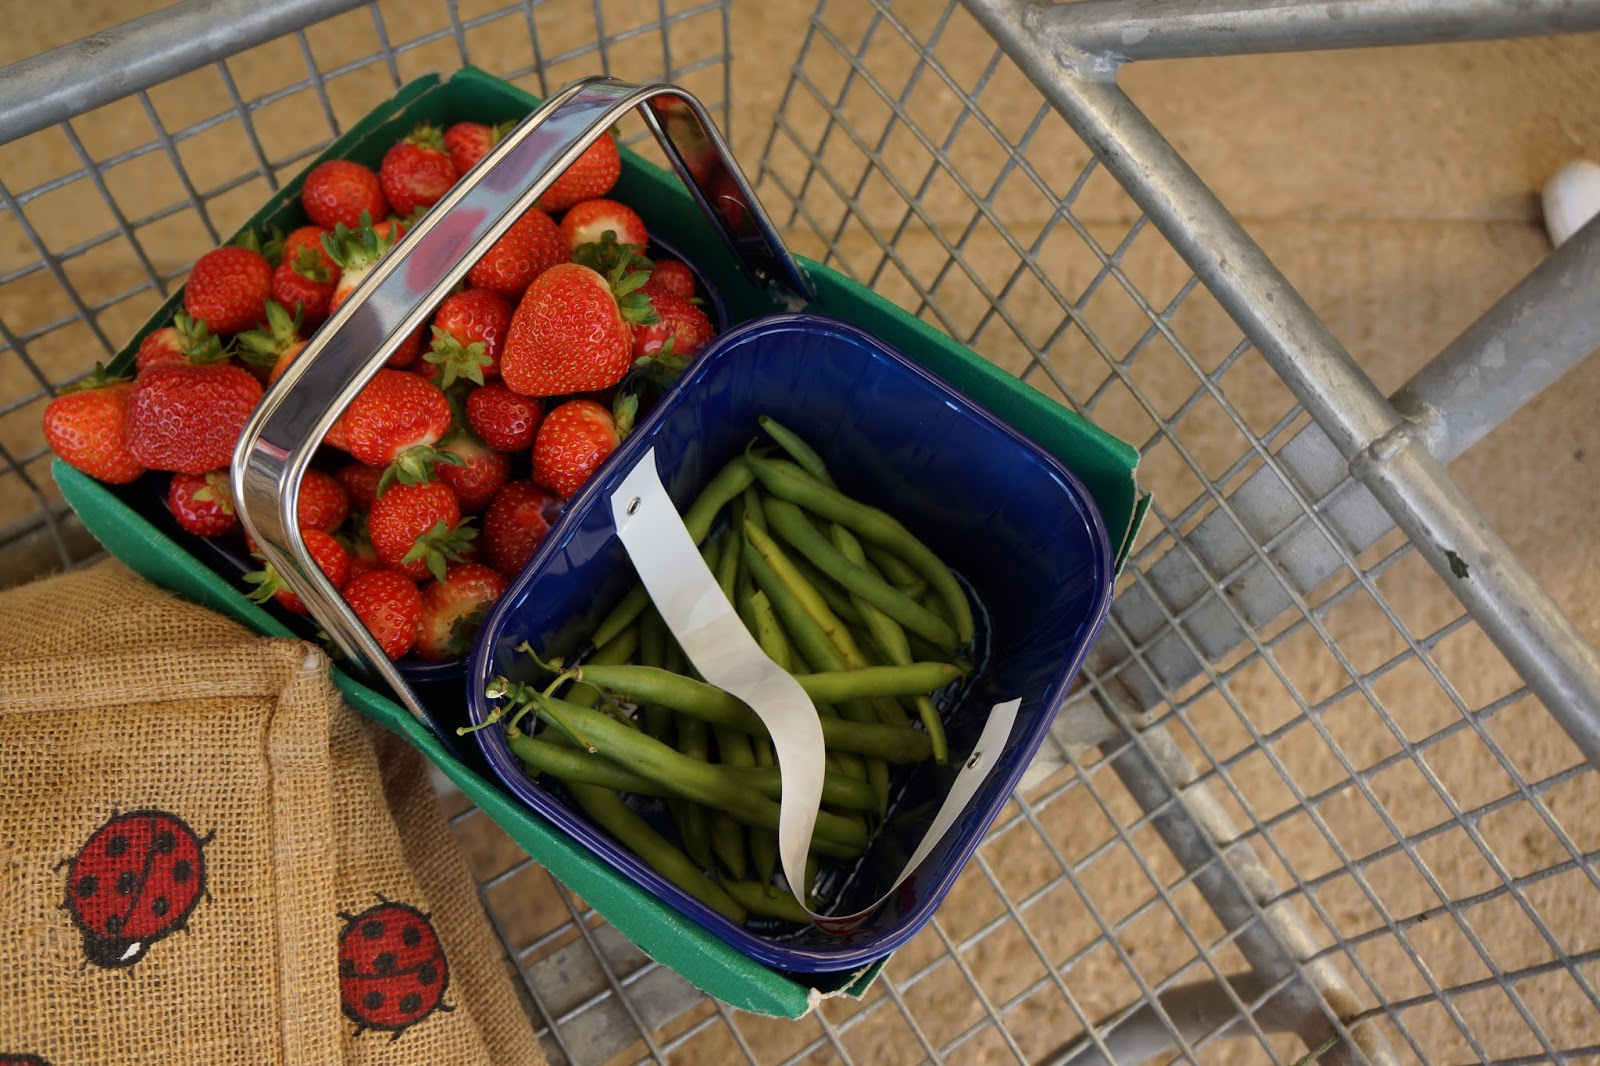 pick your own farm strawberries and french beans in a basket